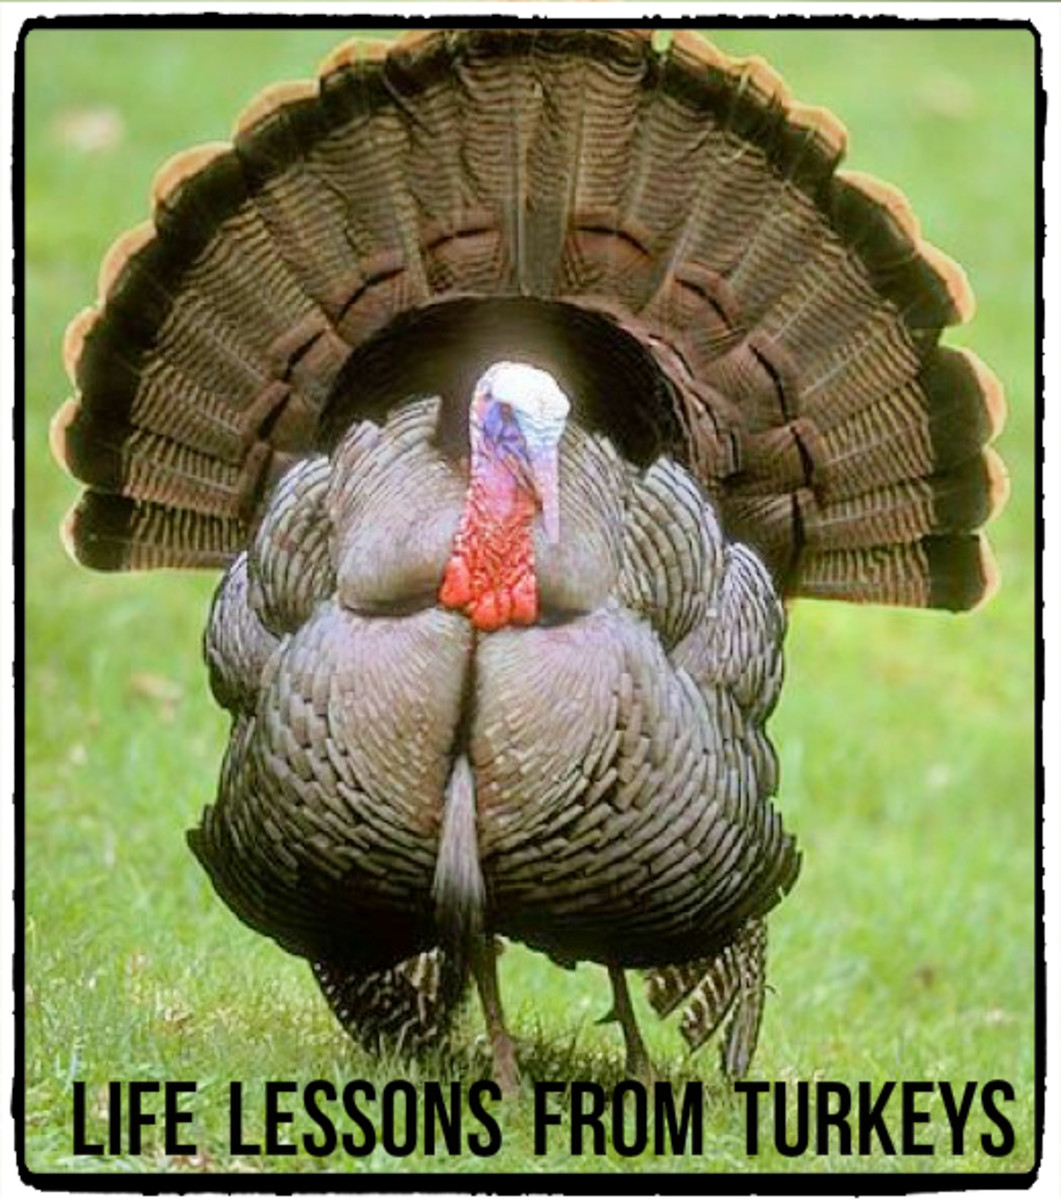 Life Lessons from Turkeys